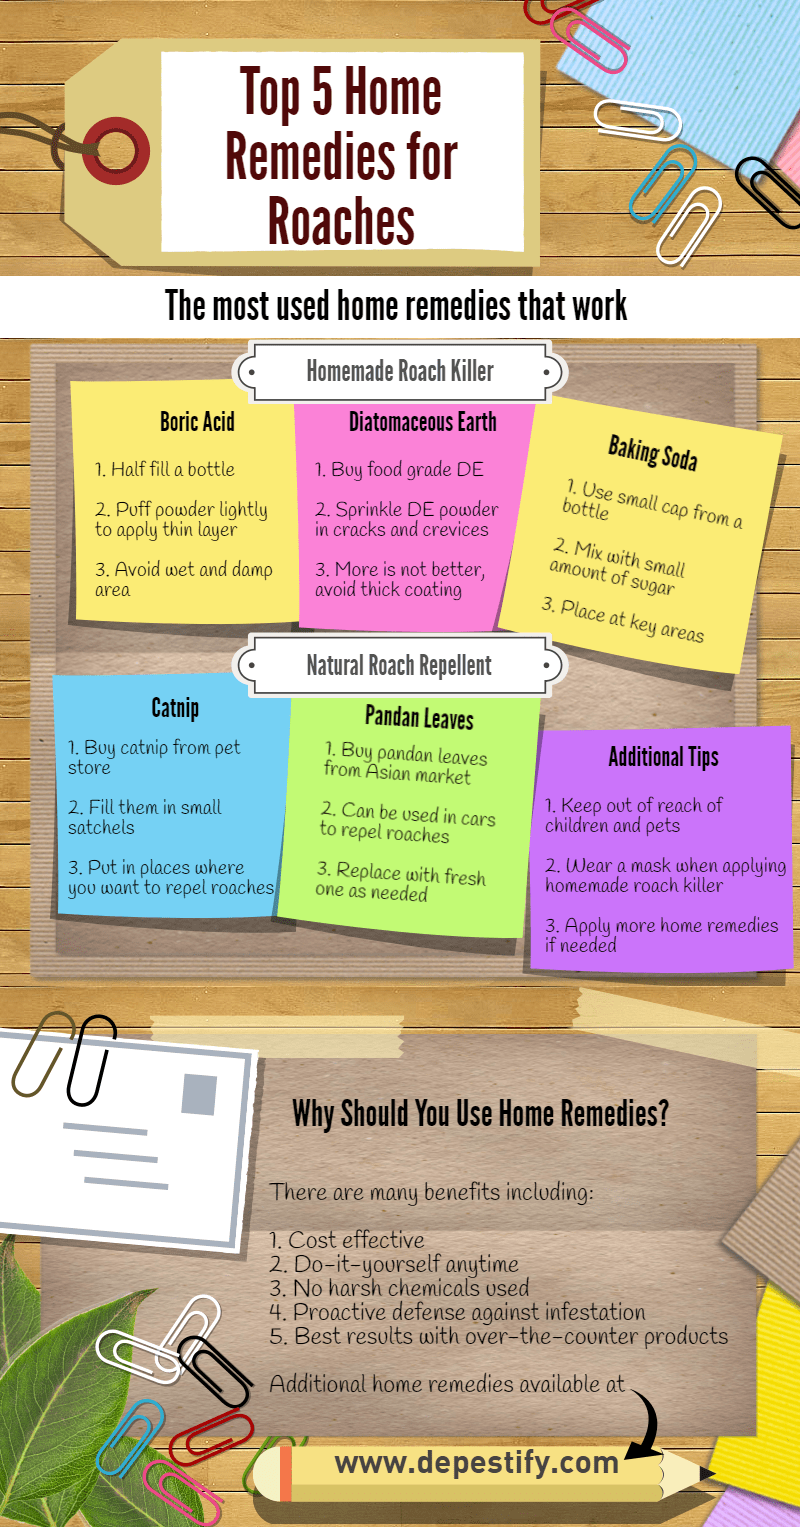 Home Remedies for Roaches Infographic